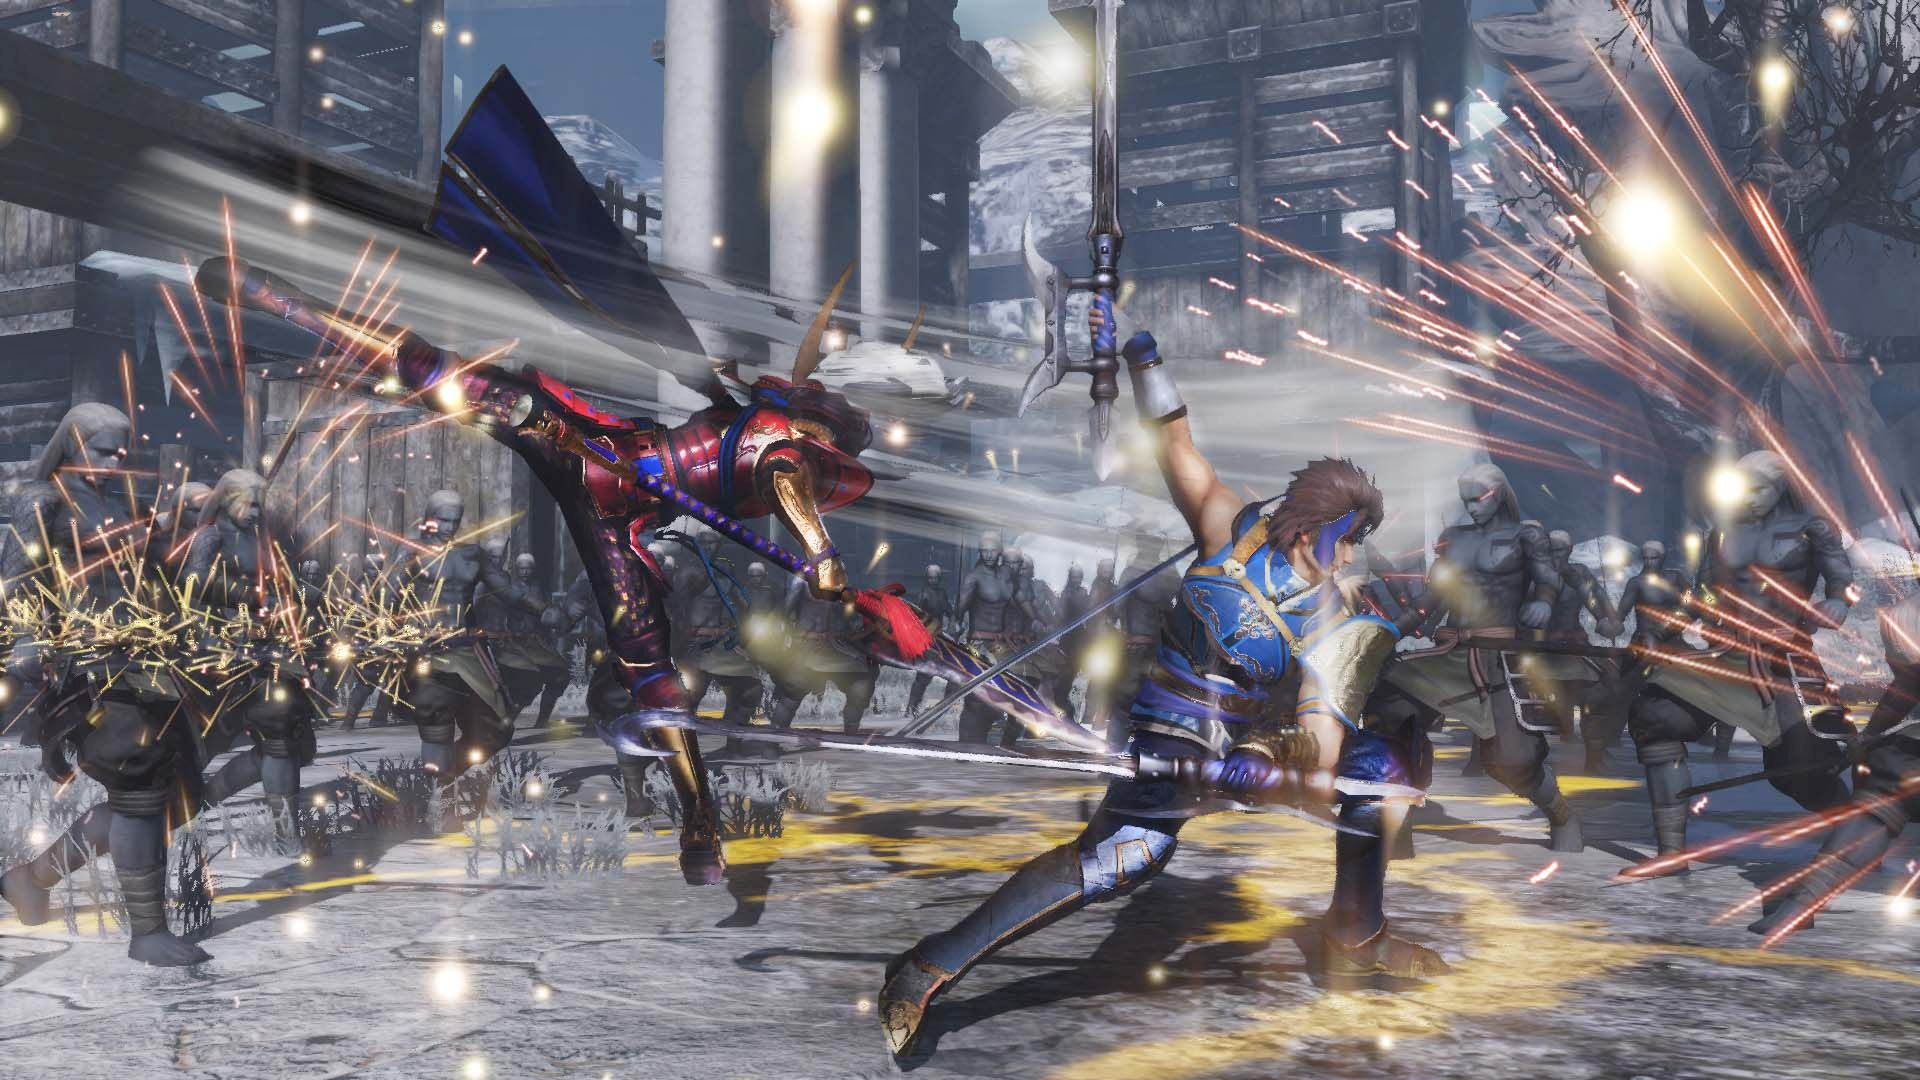 Anime Magic Wallpaper Warriors Orochi 4 Will Launch This Fall On Ps4 Xbox One